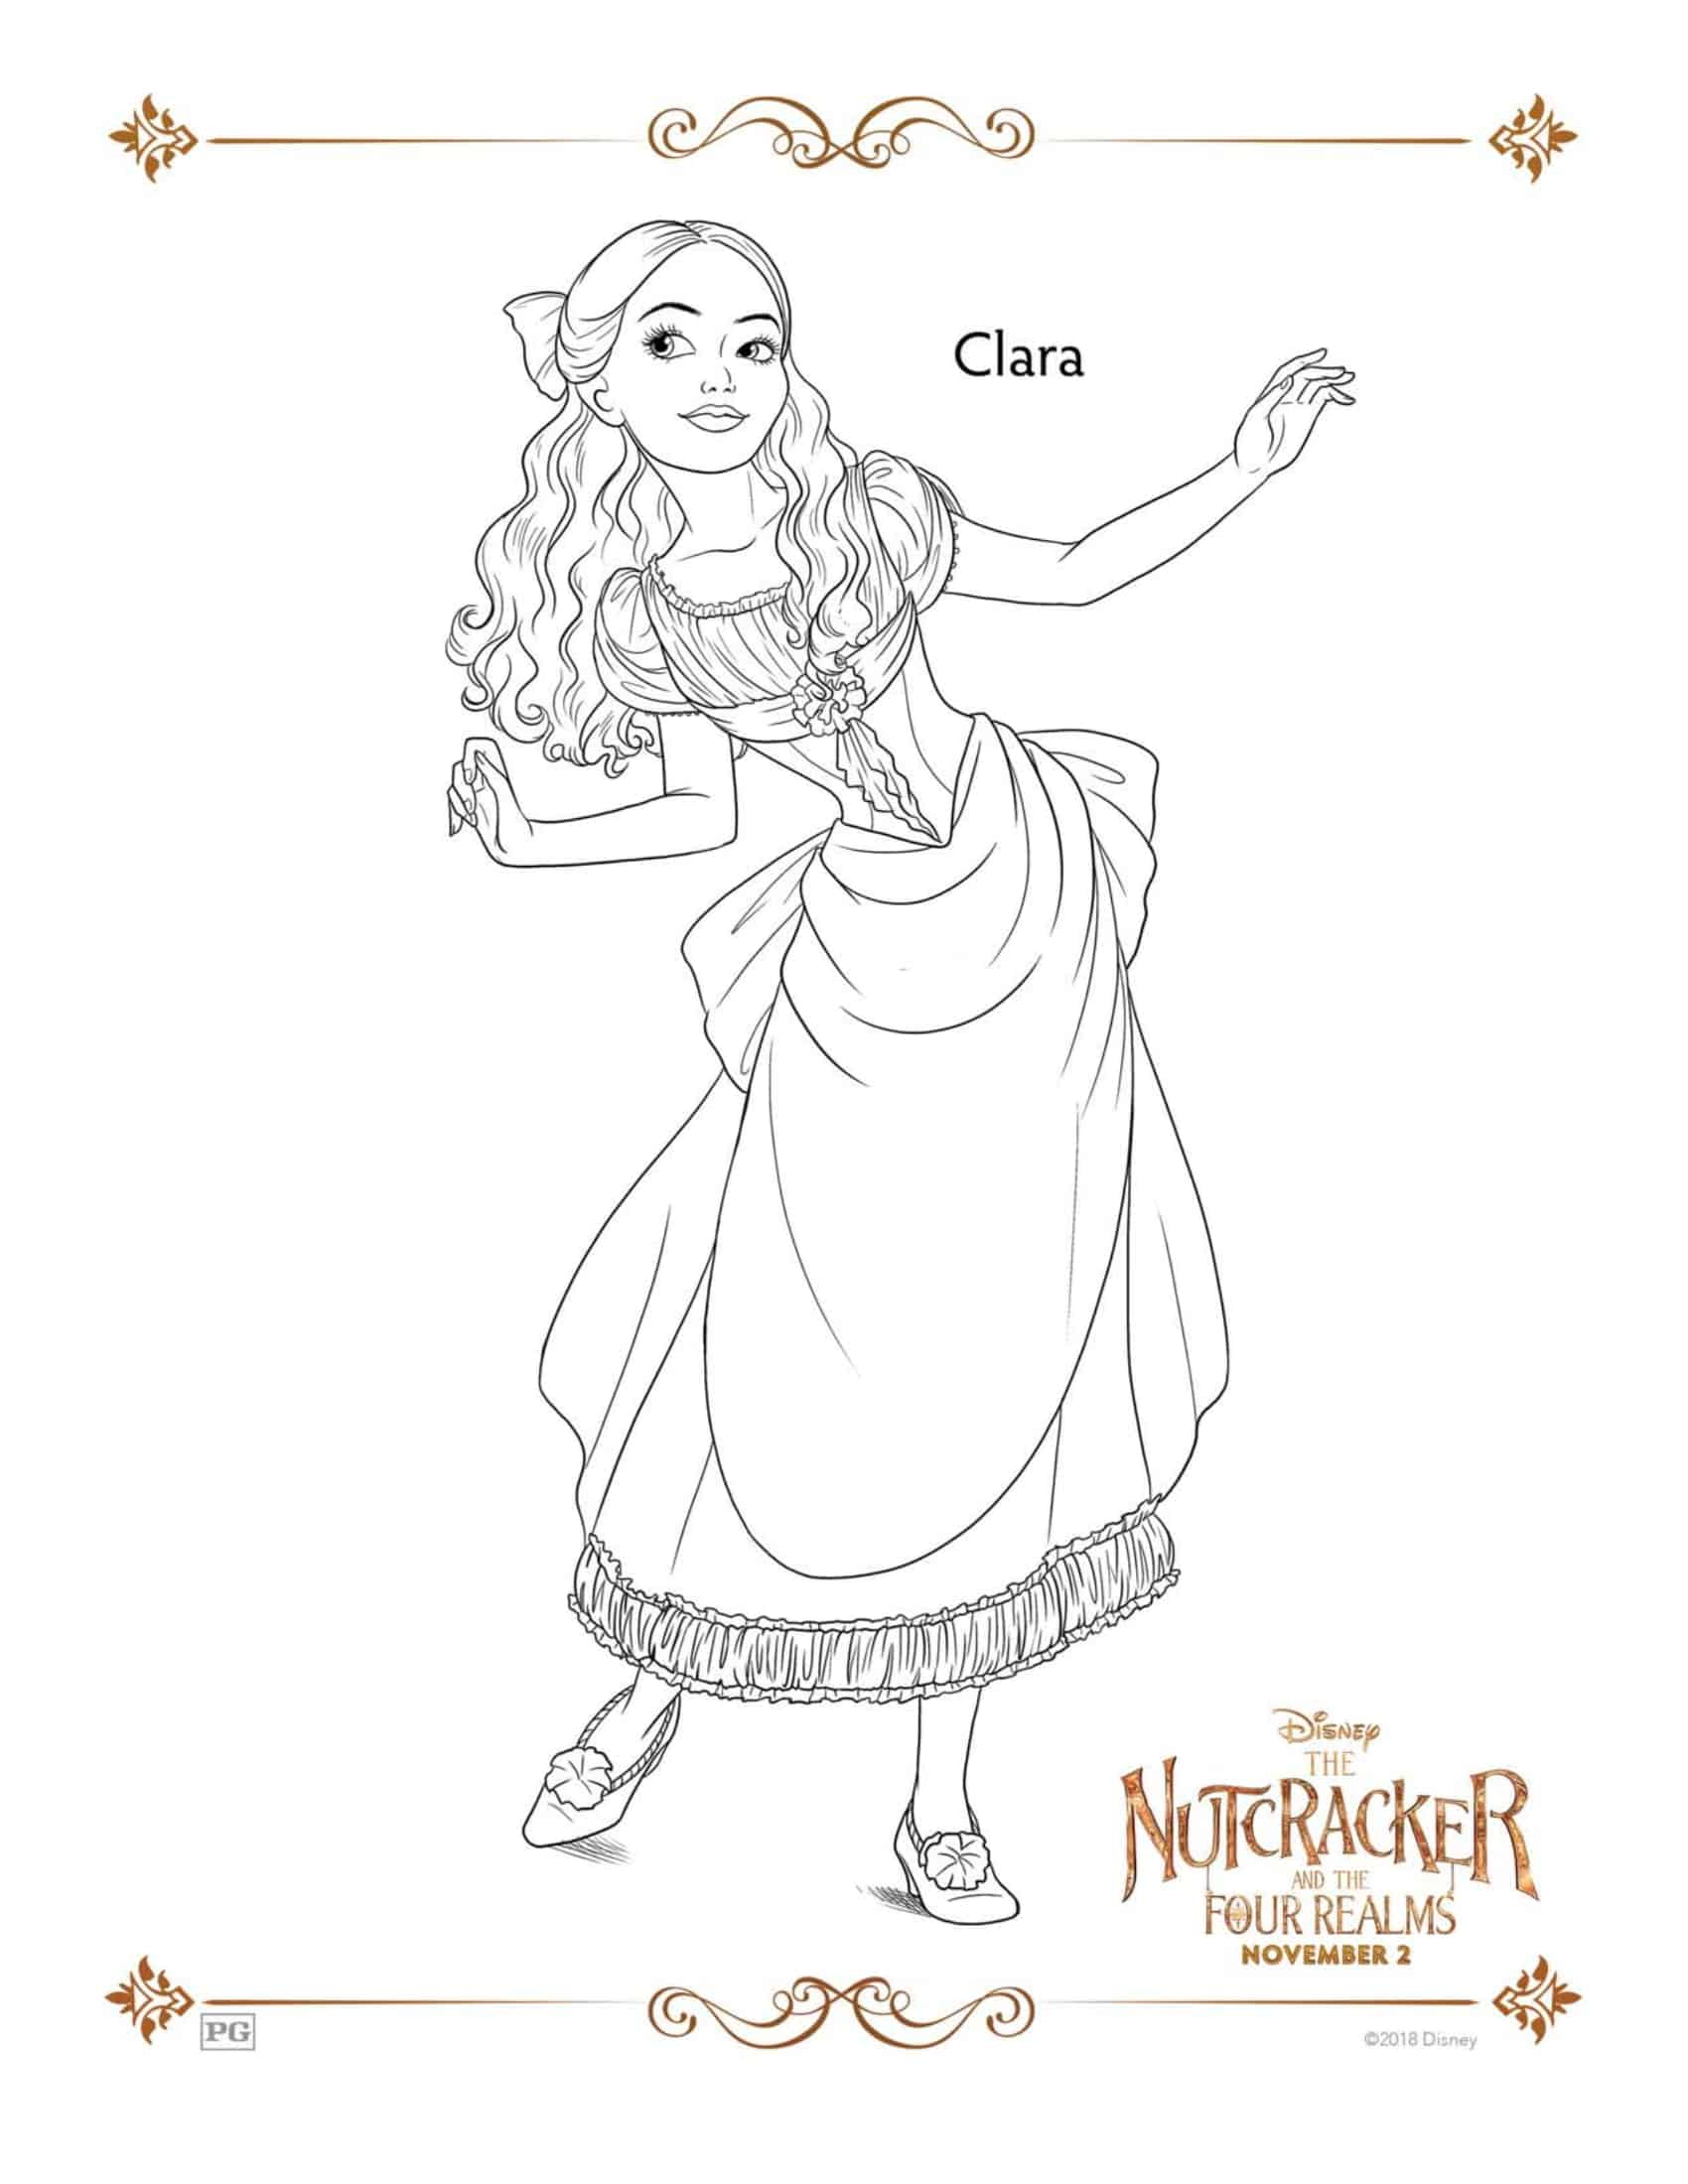 The Nutcracker & The Four Realms Coloring Pages